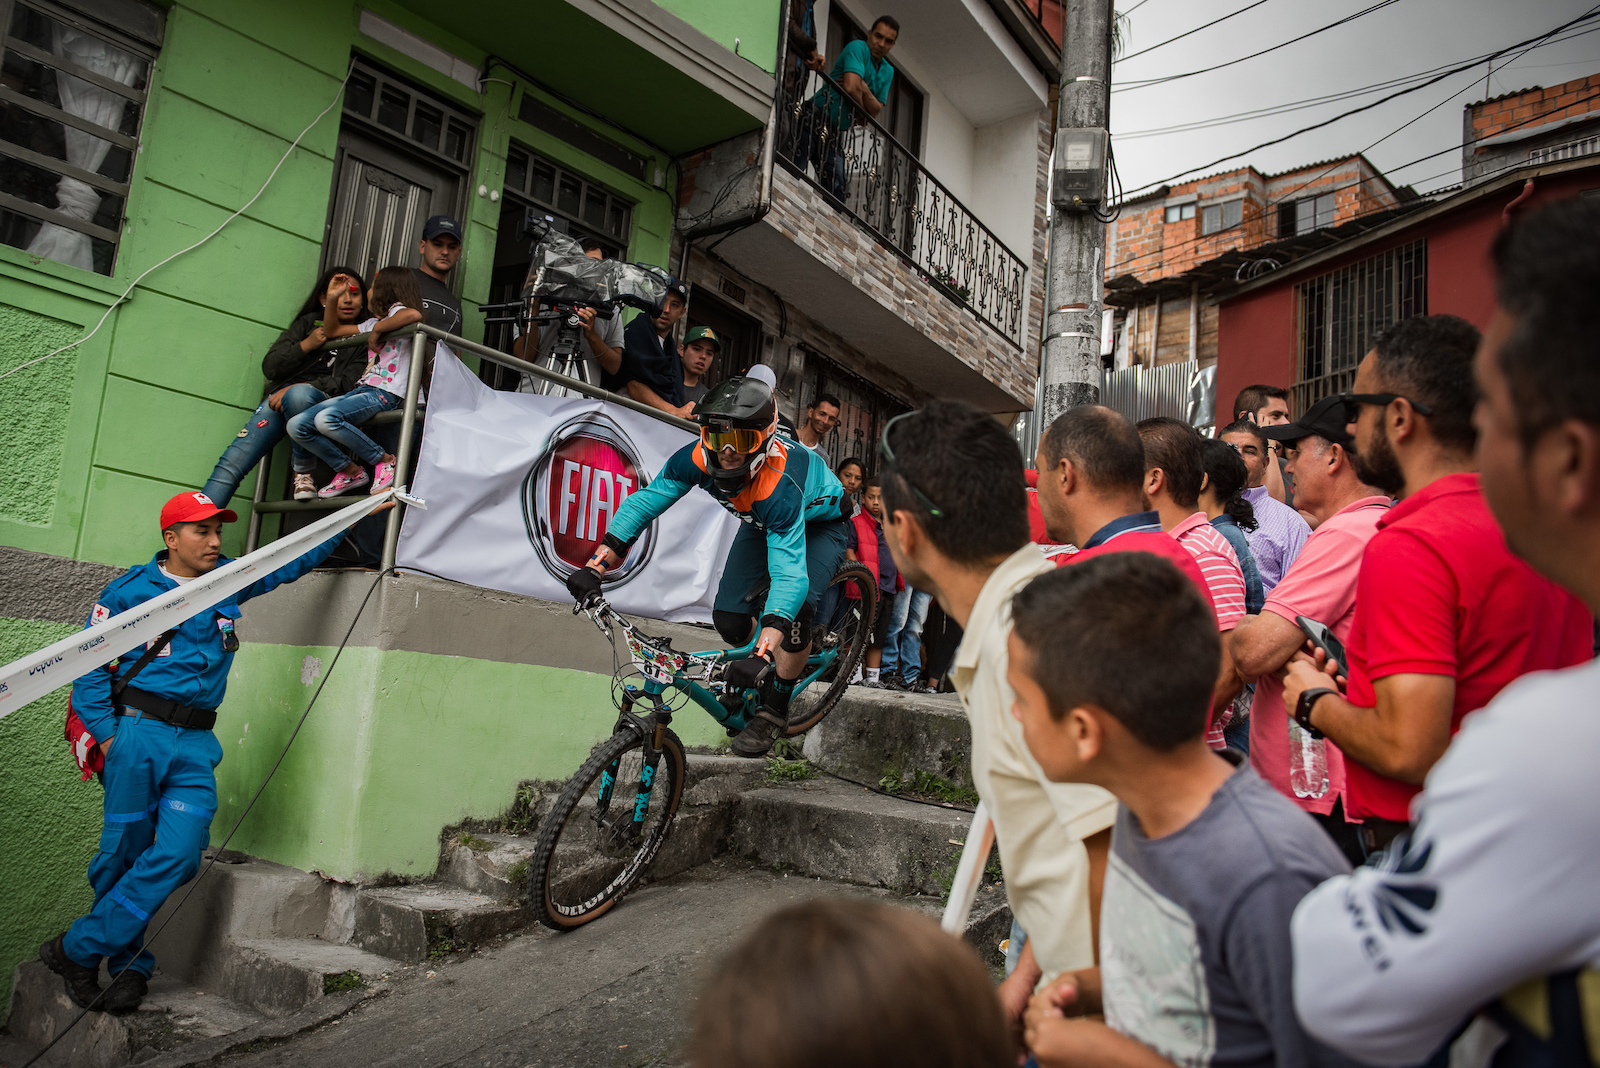 The put a stair anywhere infrastructure of Manizales made stage 1 a unique challenge